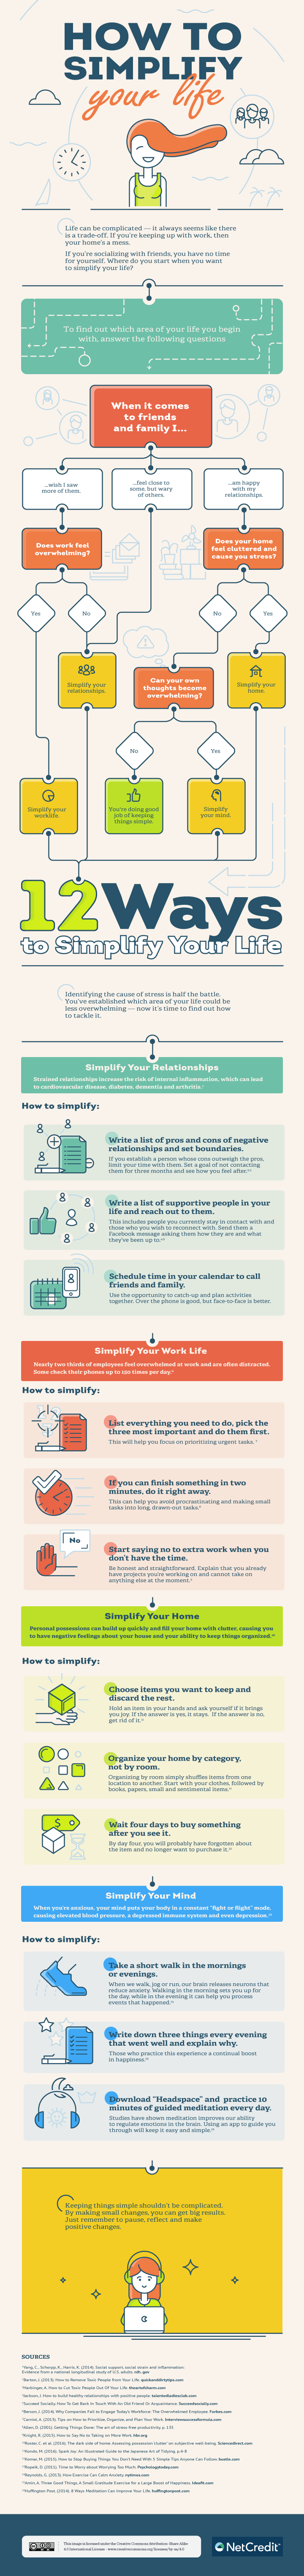 simplify your life infographic